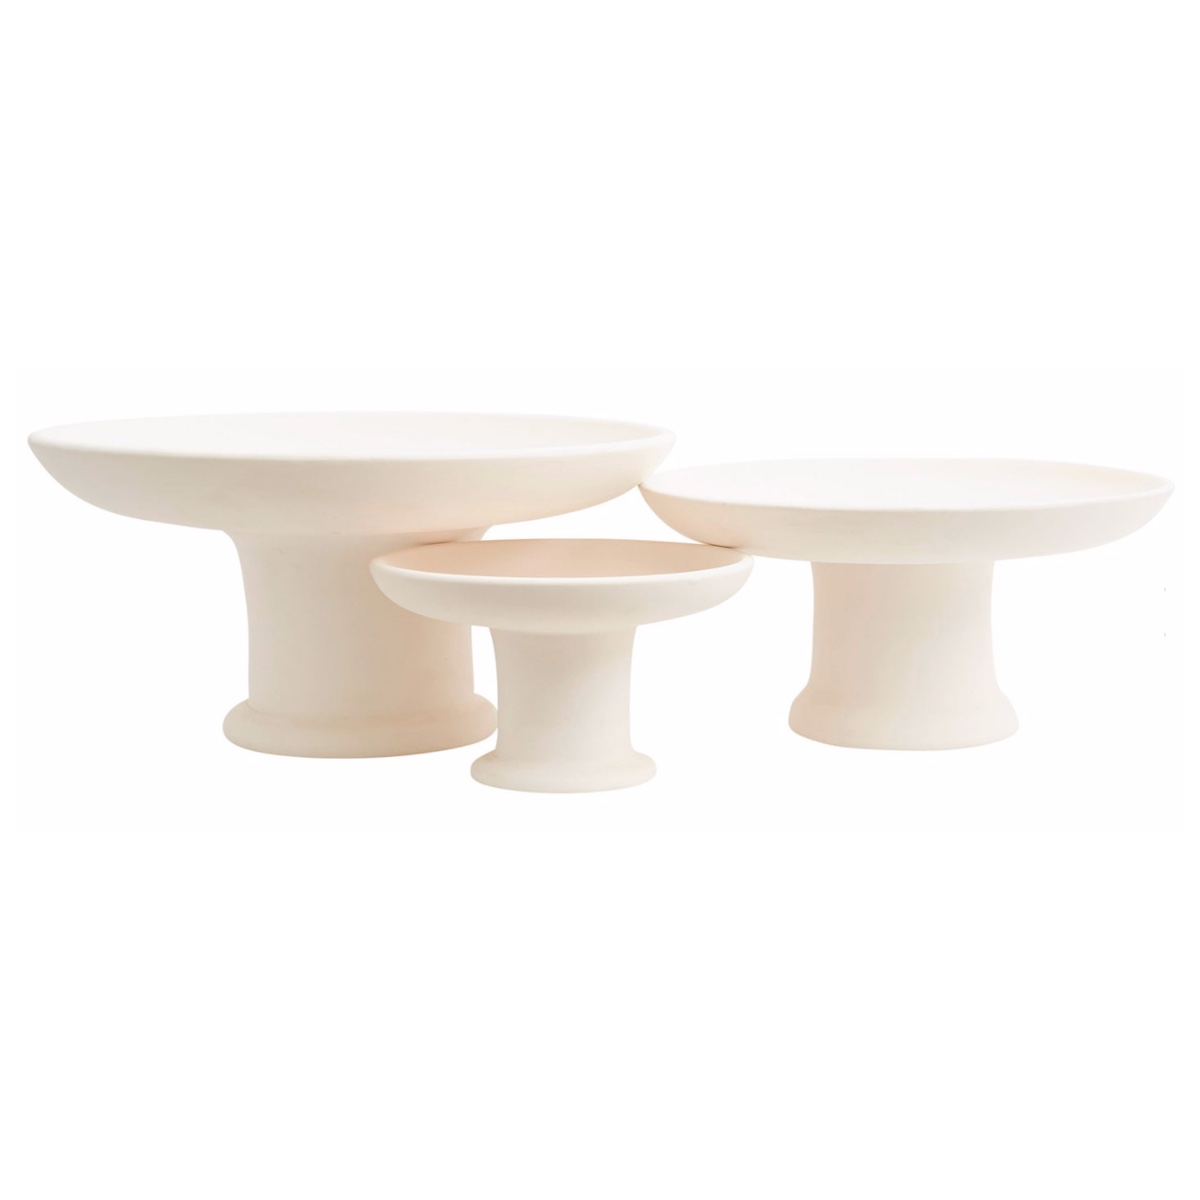 Beldi Footed Plates